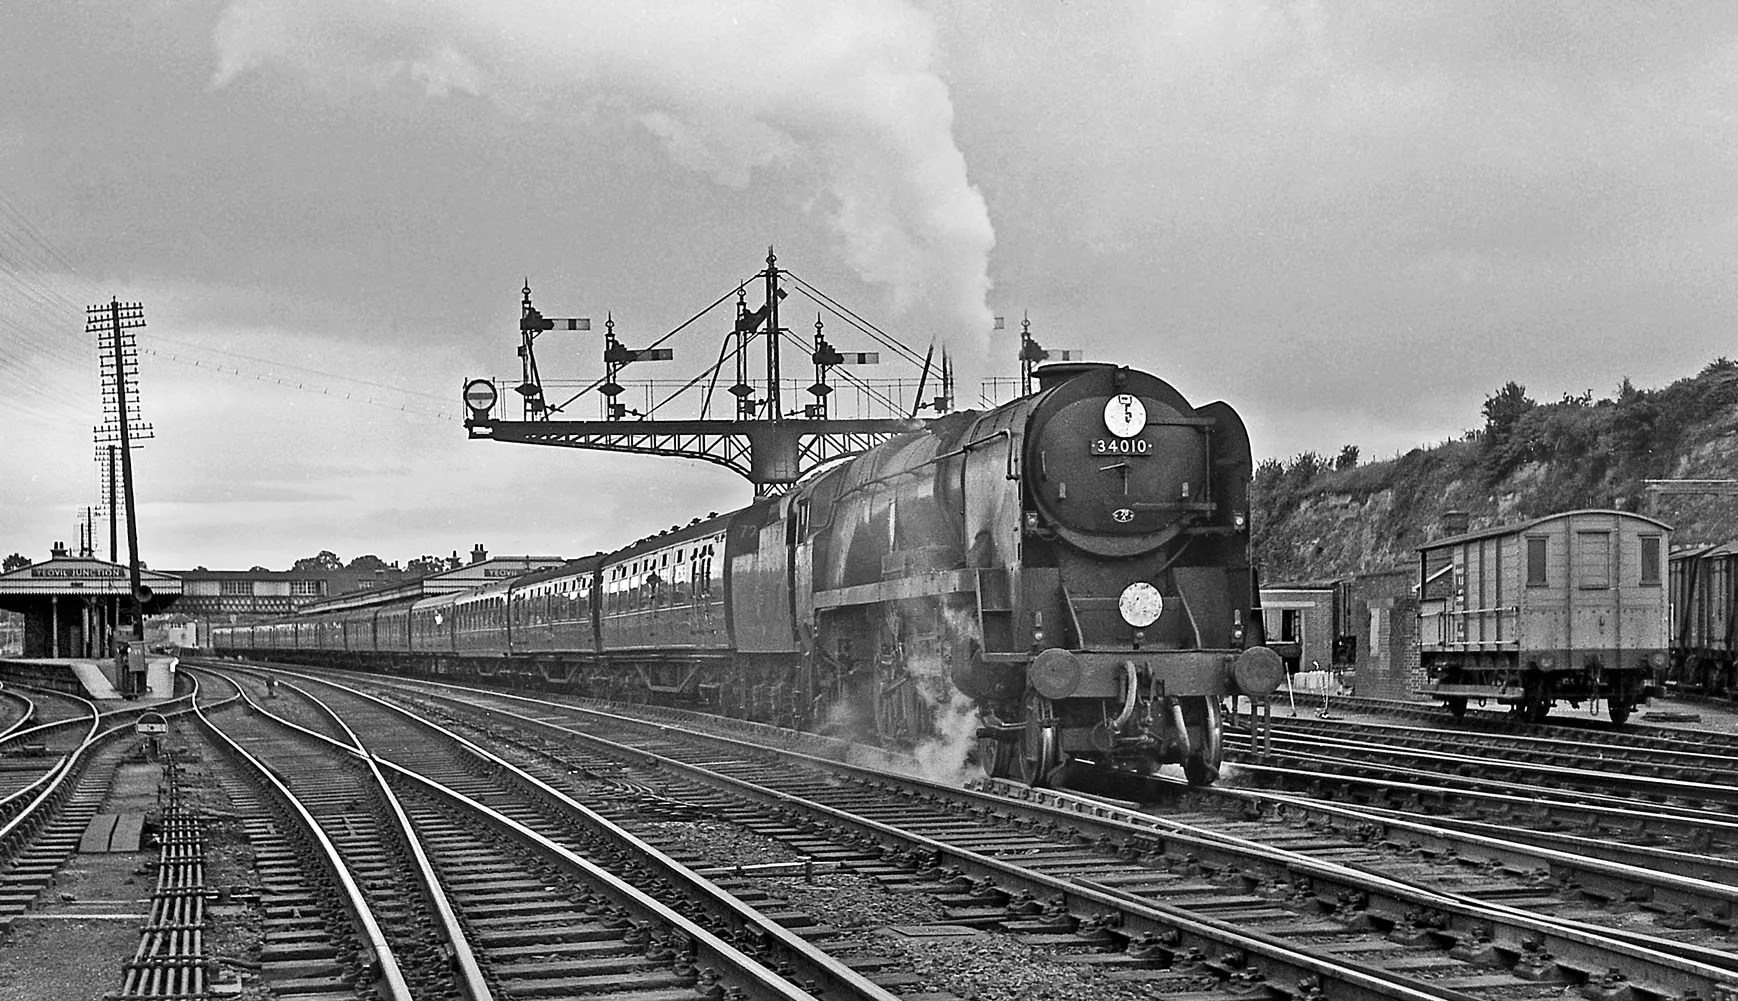 Bulleid Pacific - 34053 - Sidmouth locomotive - Yeovil